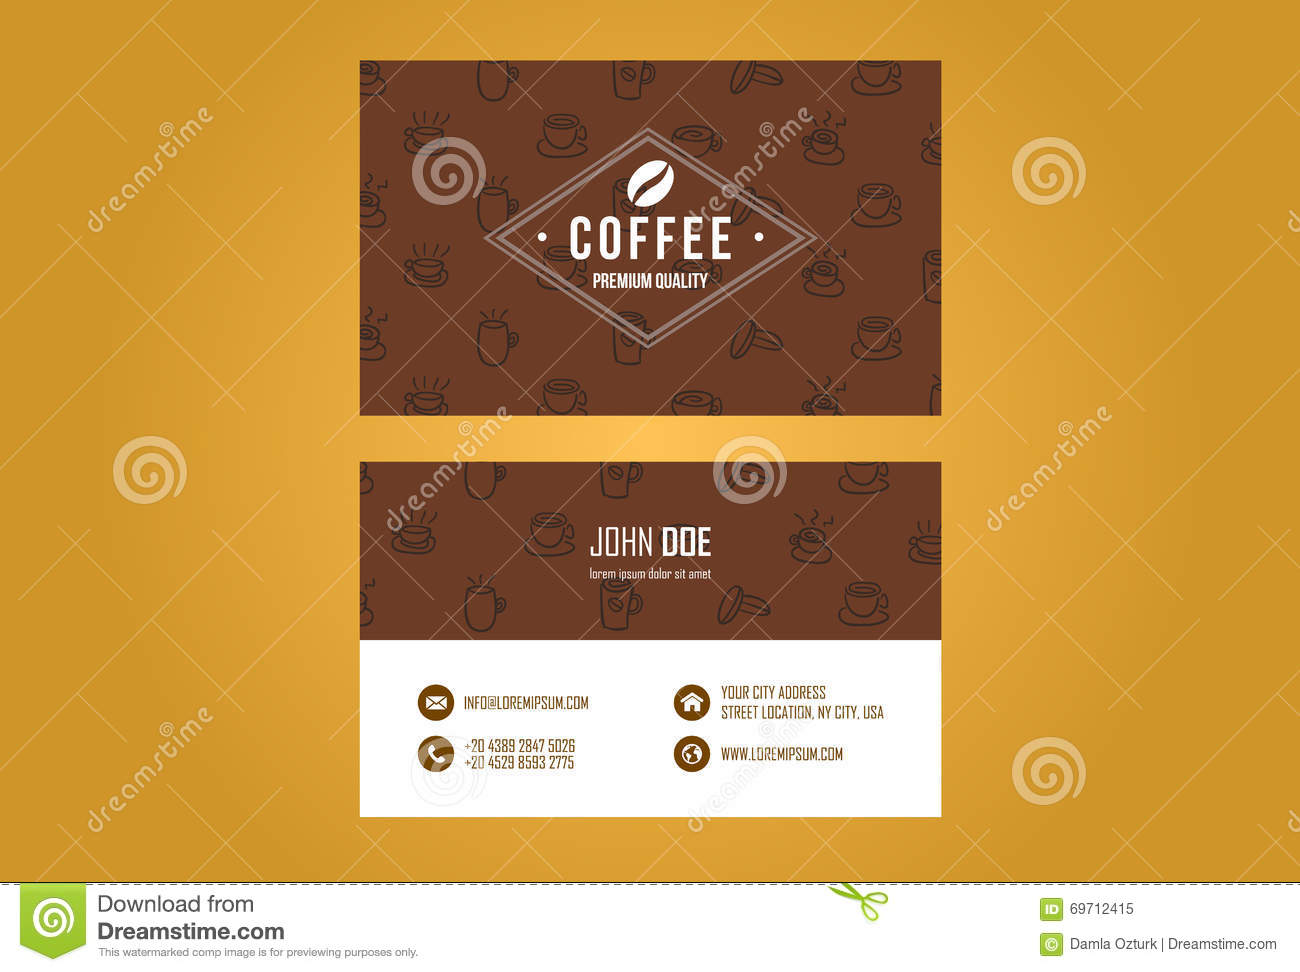 Coffee House Business Card Design Stock Image - Image of card, brand ...